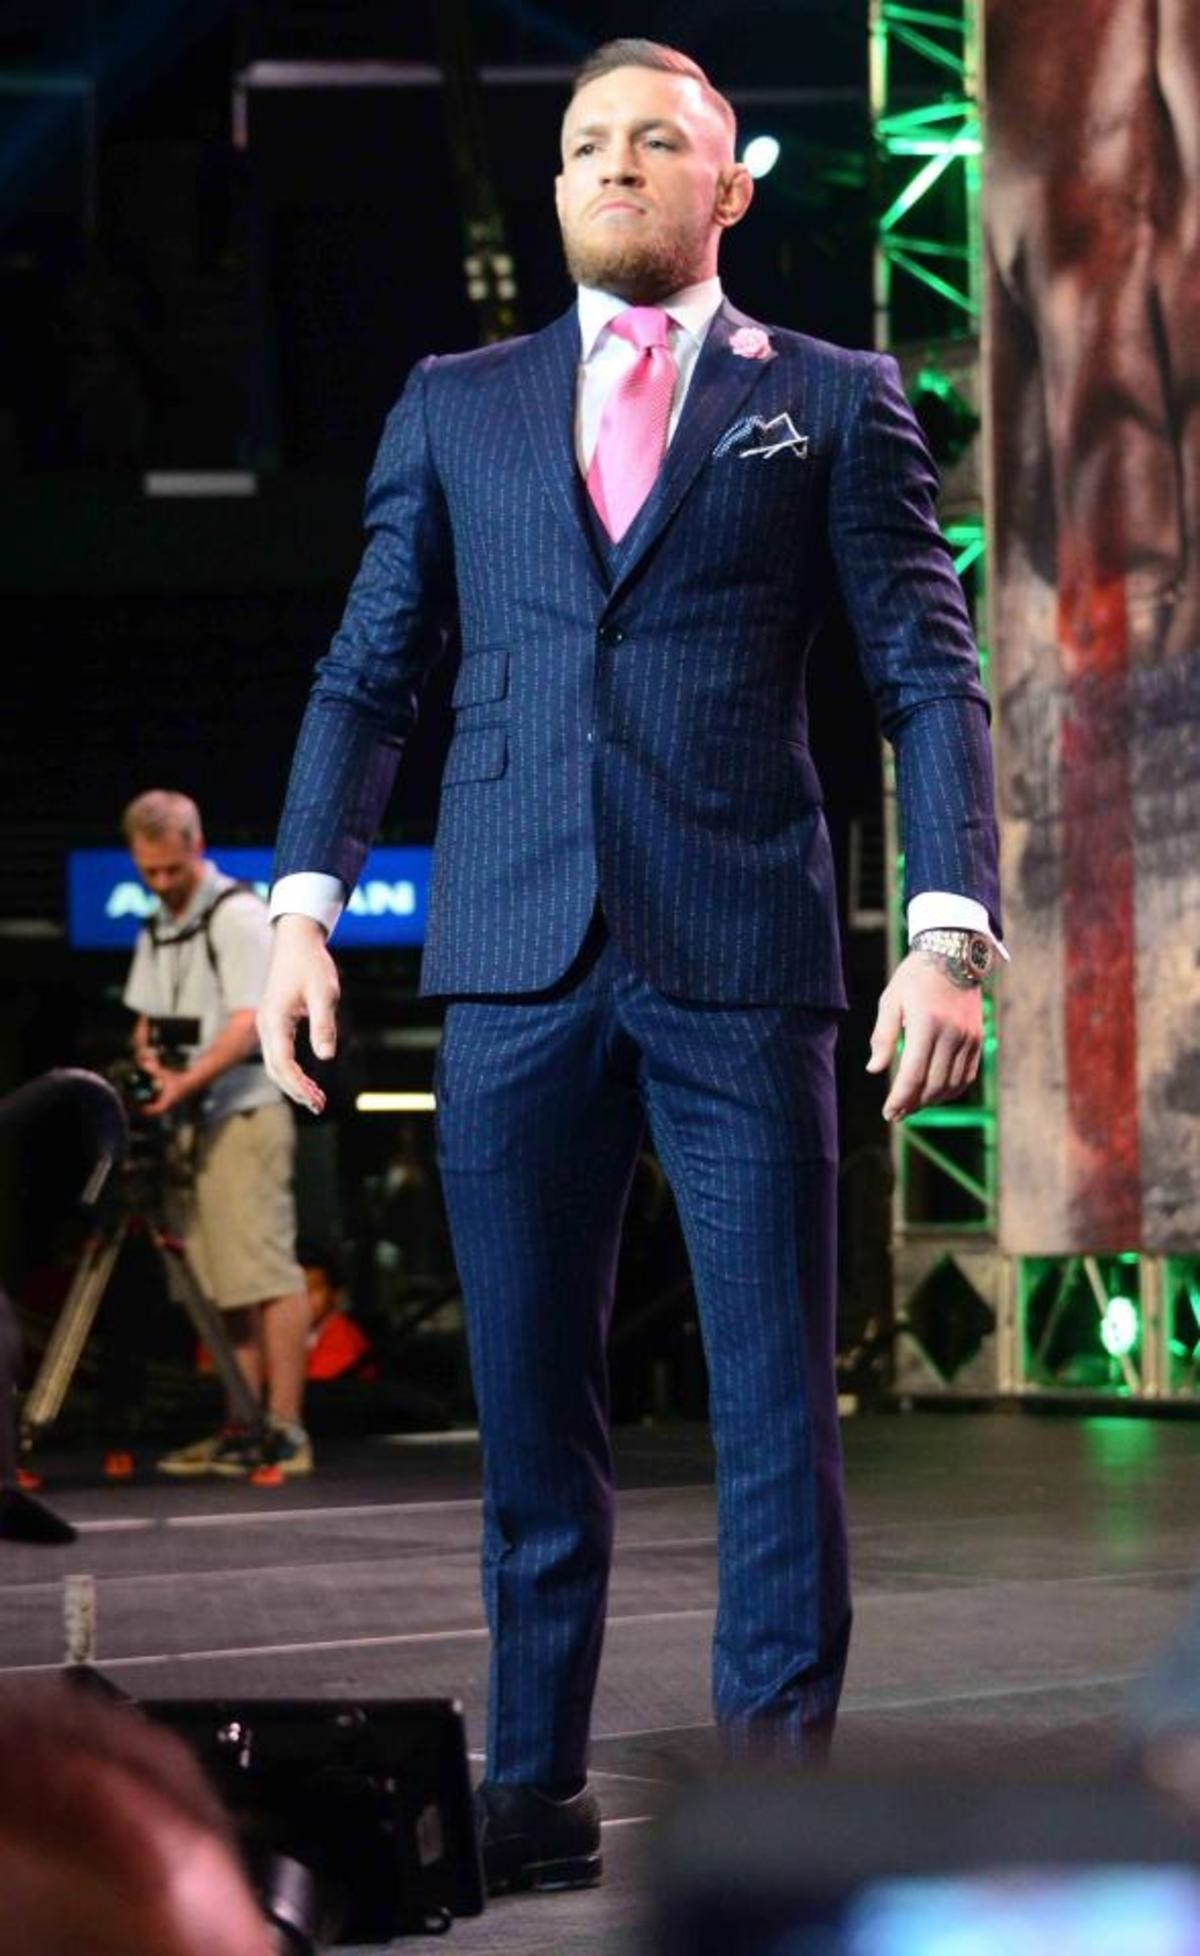 Conor McGregor's 'F You' suit. It's old news but I love this . LOL Honestly if this guy wasn't a champion ass-beater this would be edgy troll for sure..